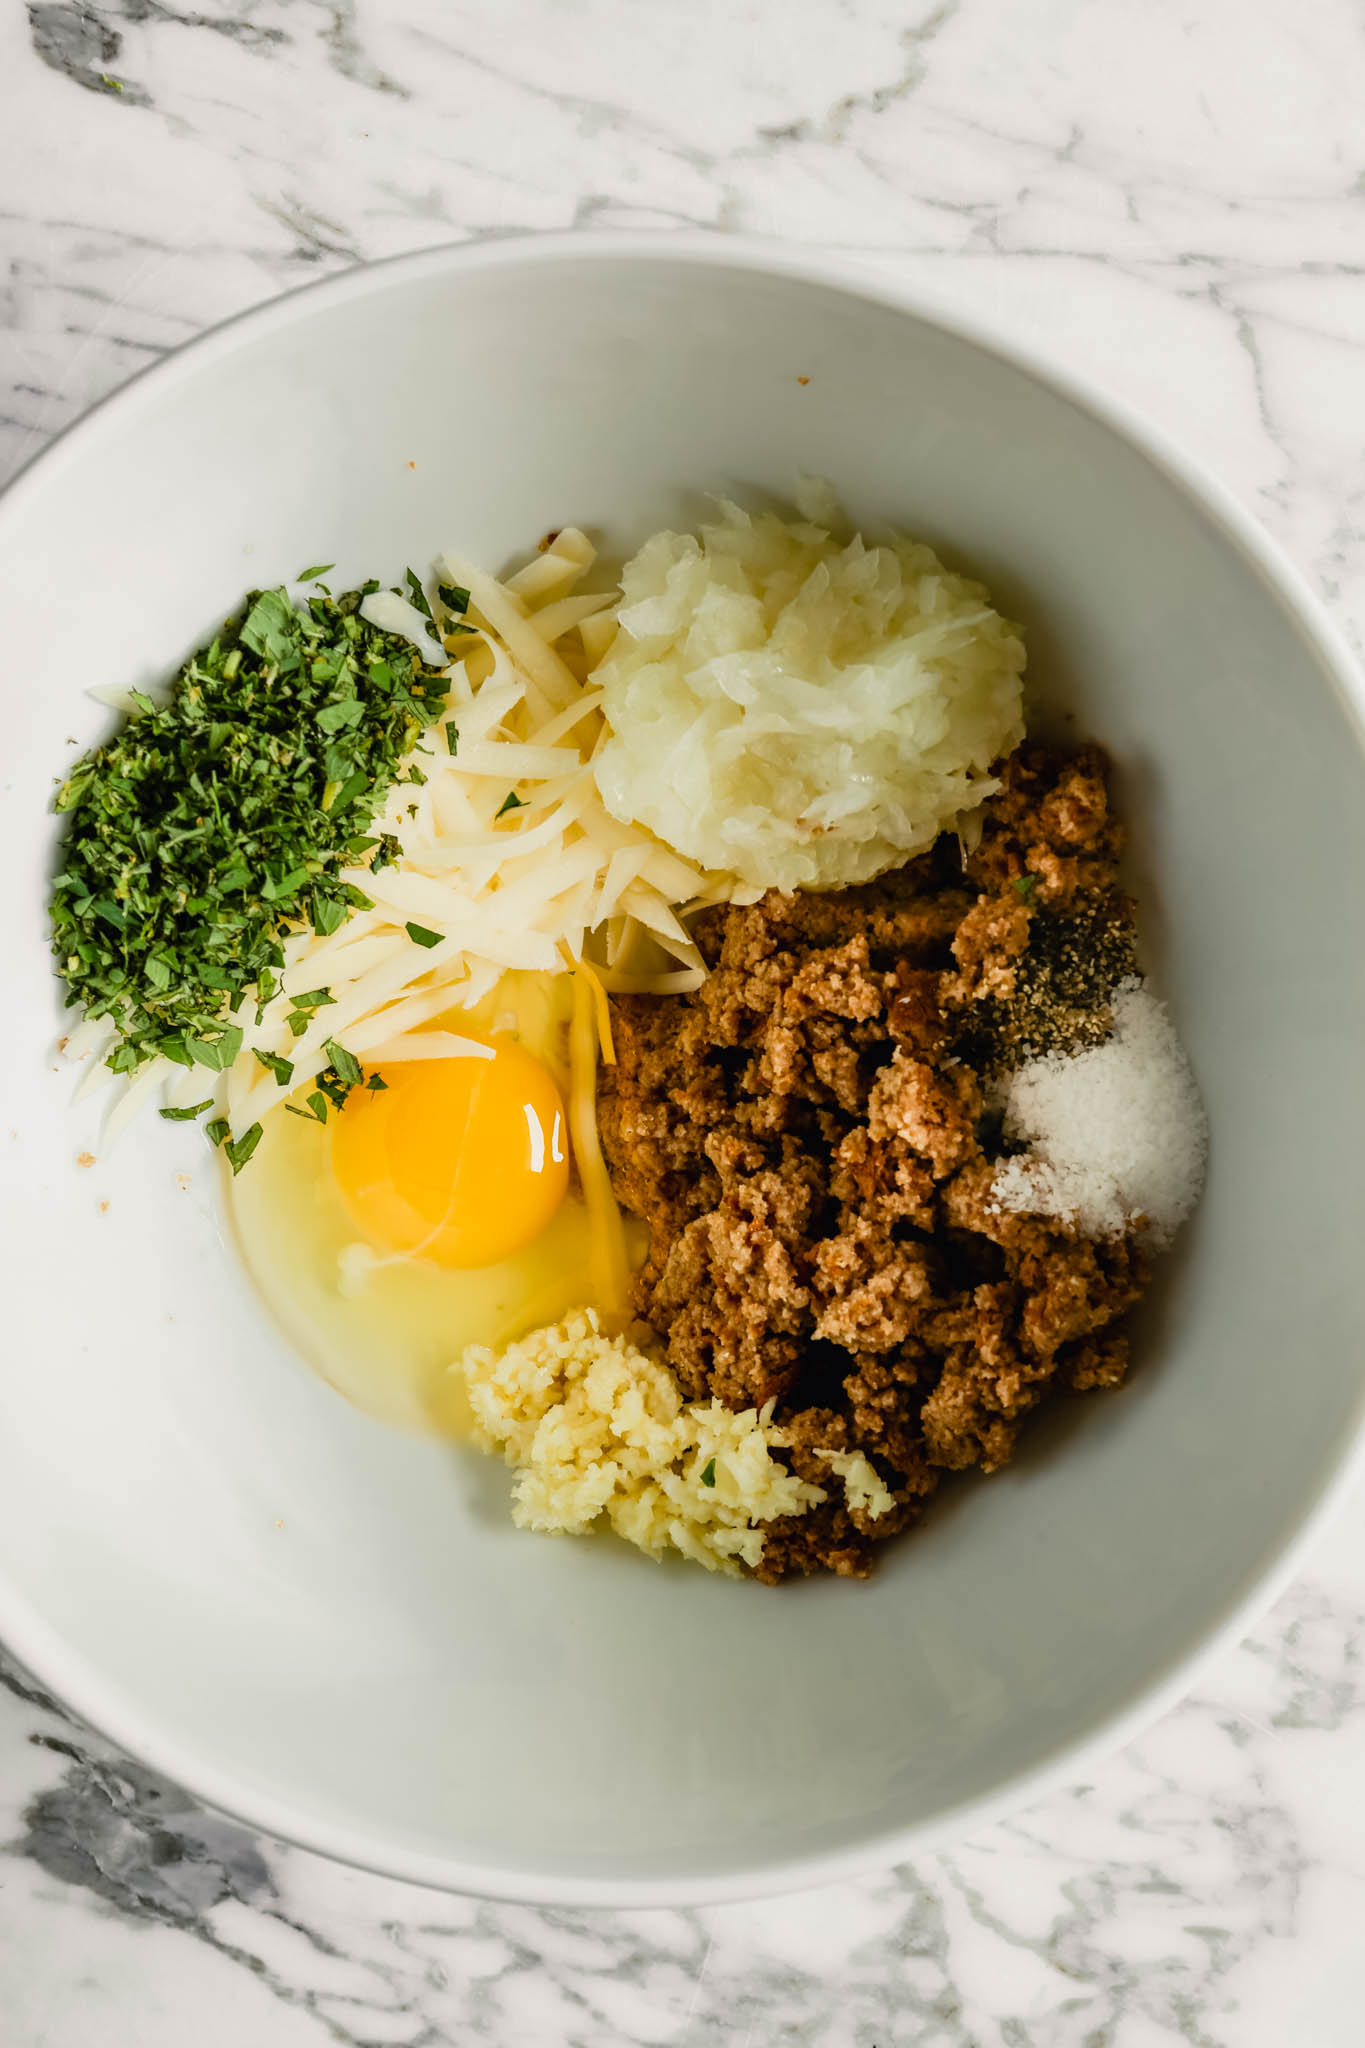 Photograph of meatball ingredients in a large white bowl